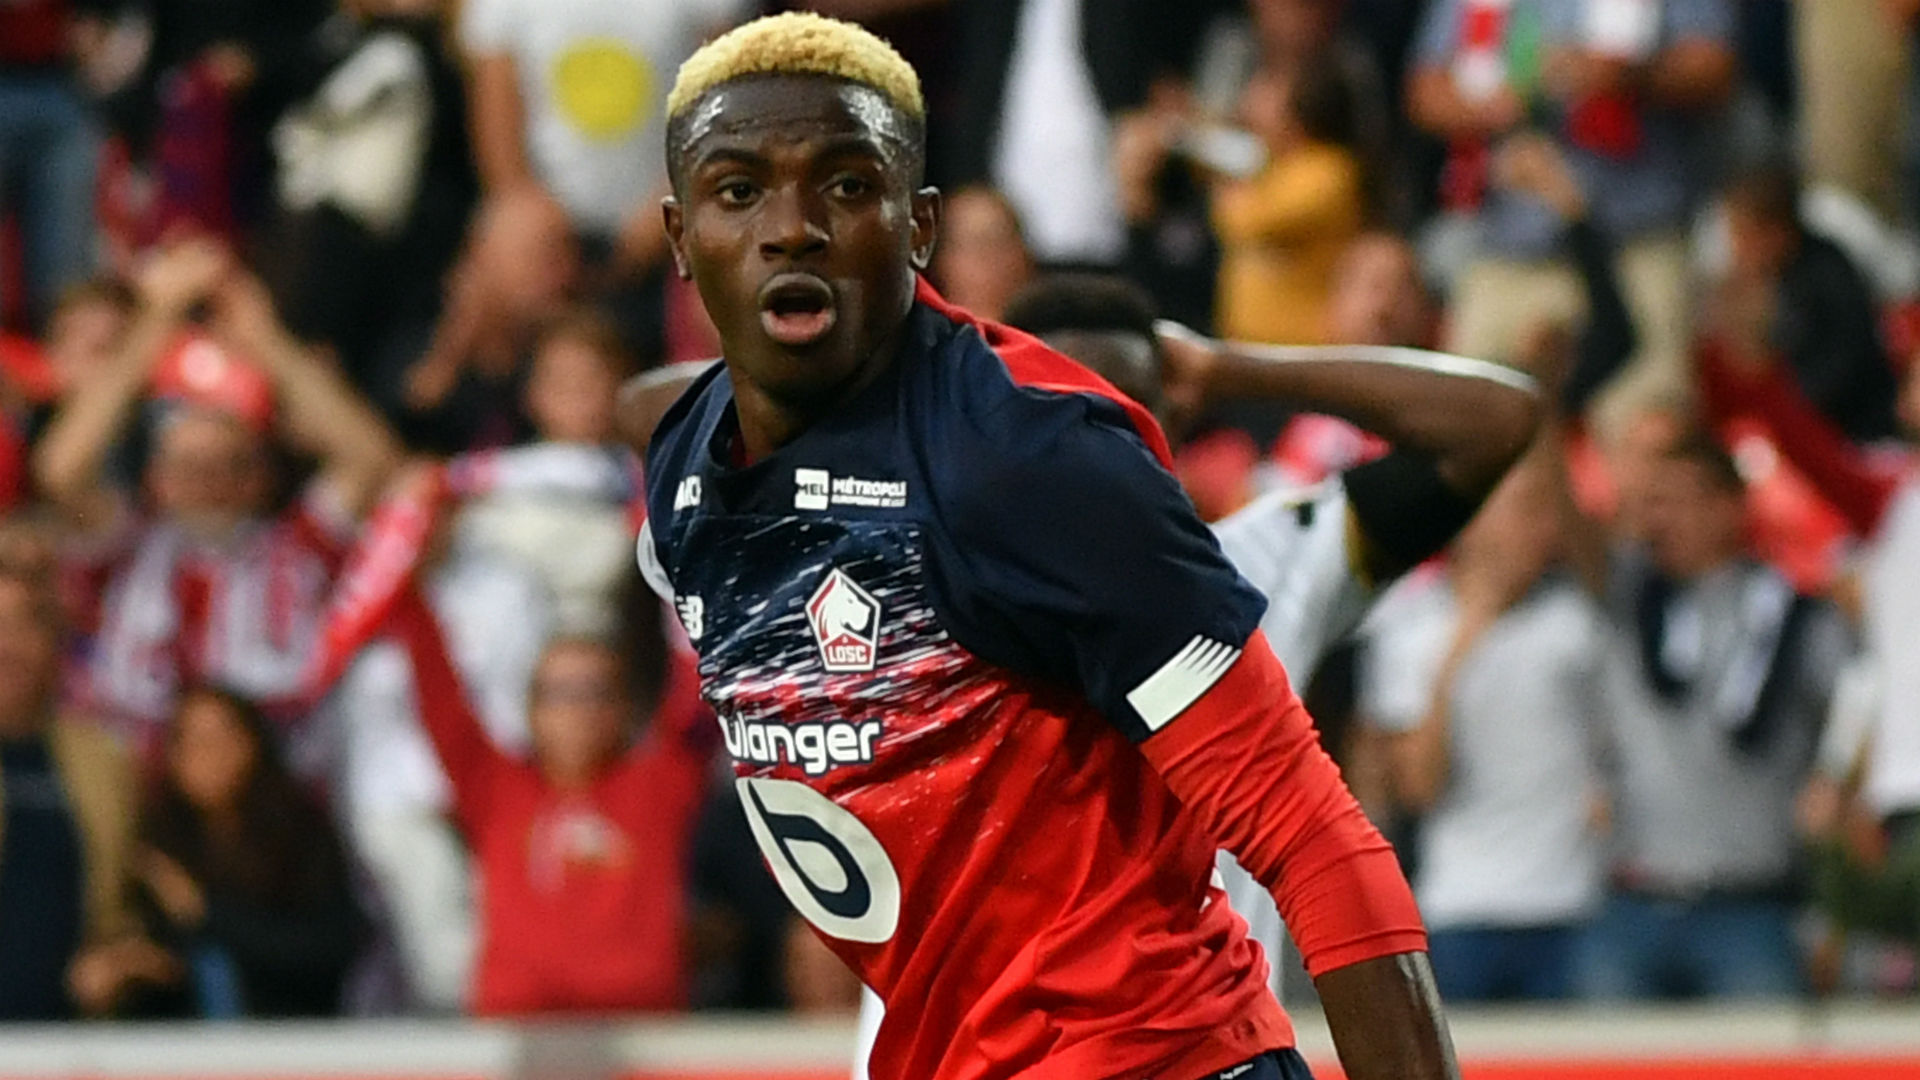 Osimhen: Barcelona and Real Madrid target could leave Lille next year